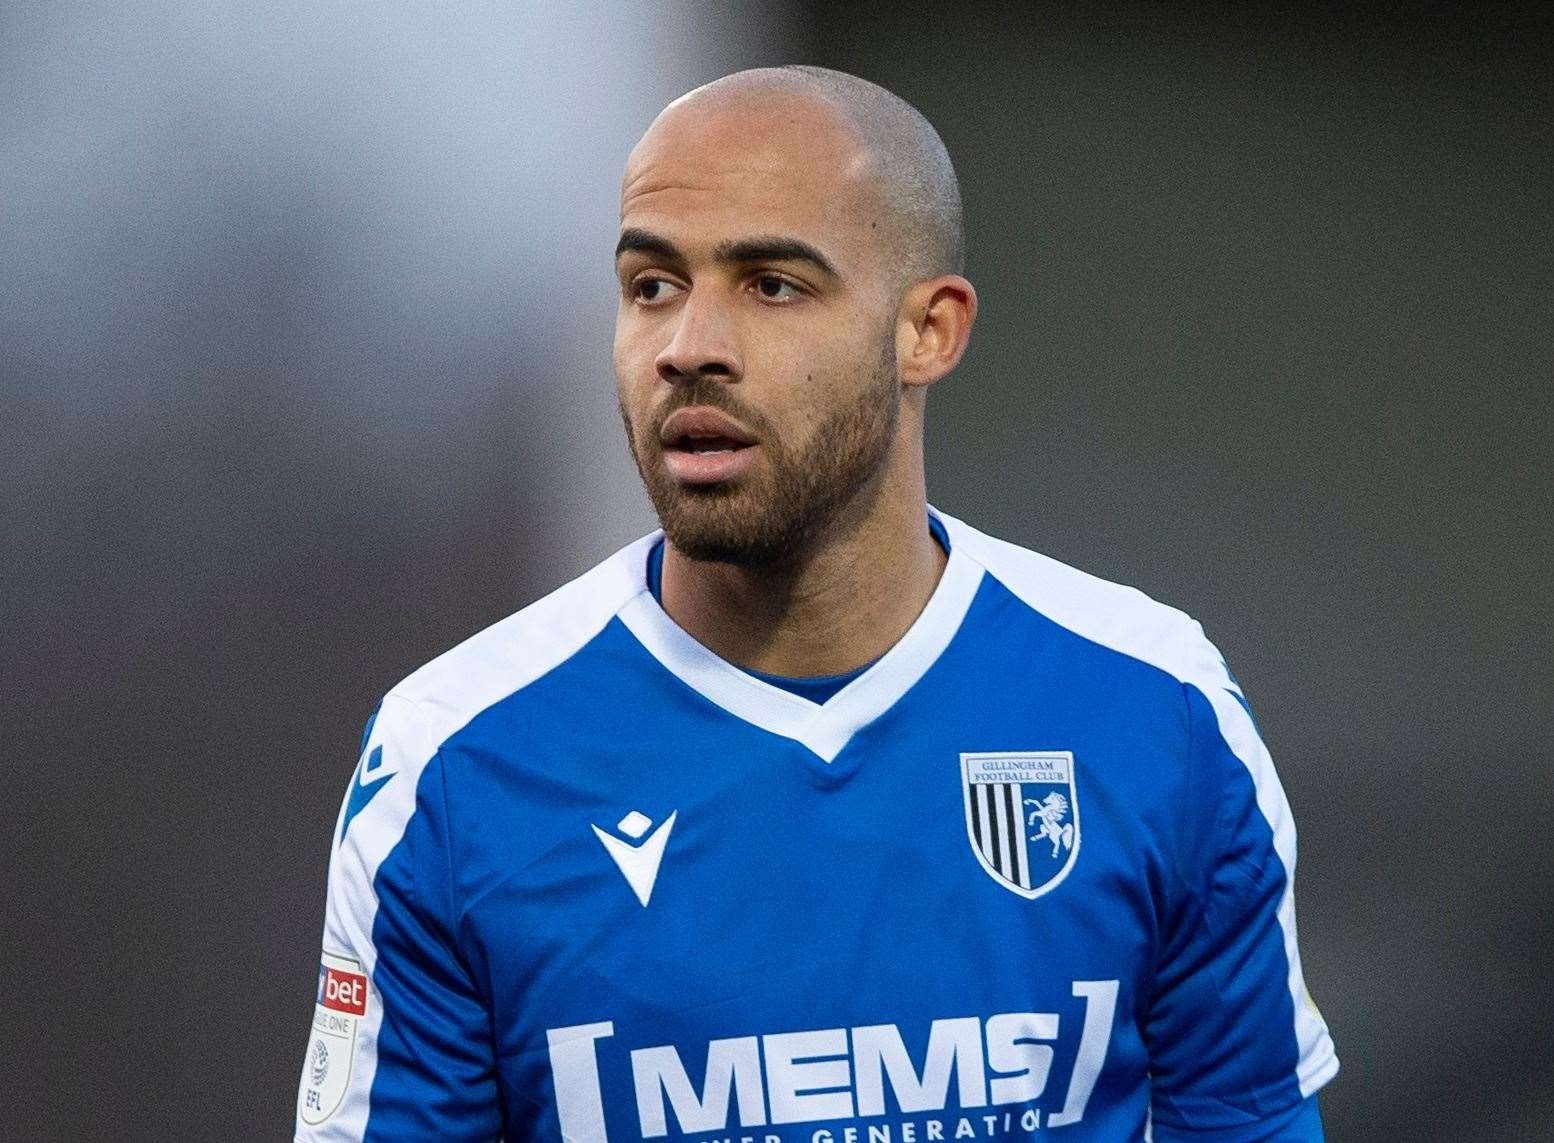 Gillingham forward Jordan Graham scored his fourth goal of the season on Saturday